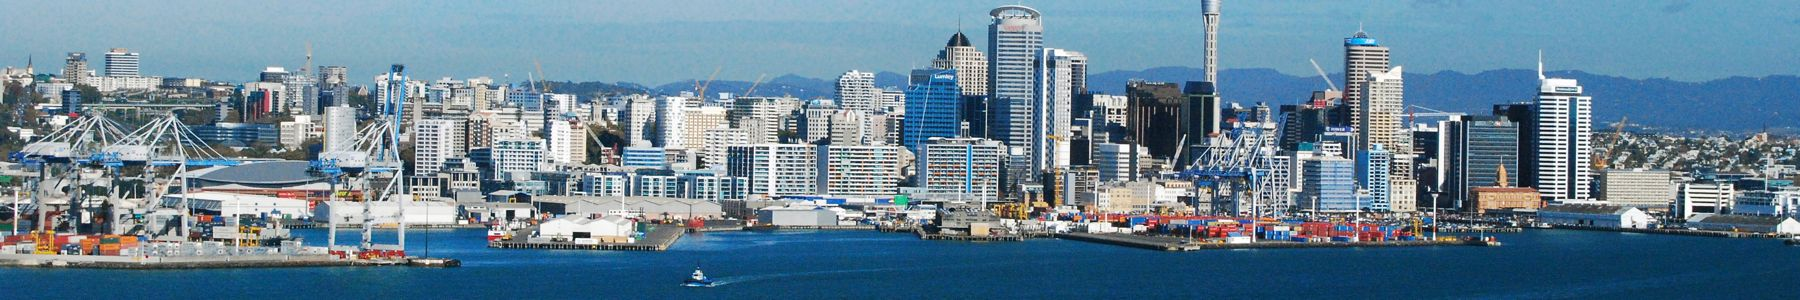 The Big Little City, Auckland, NZ